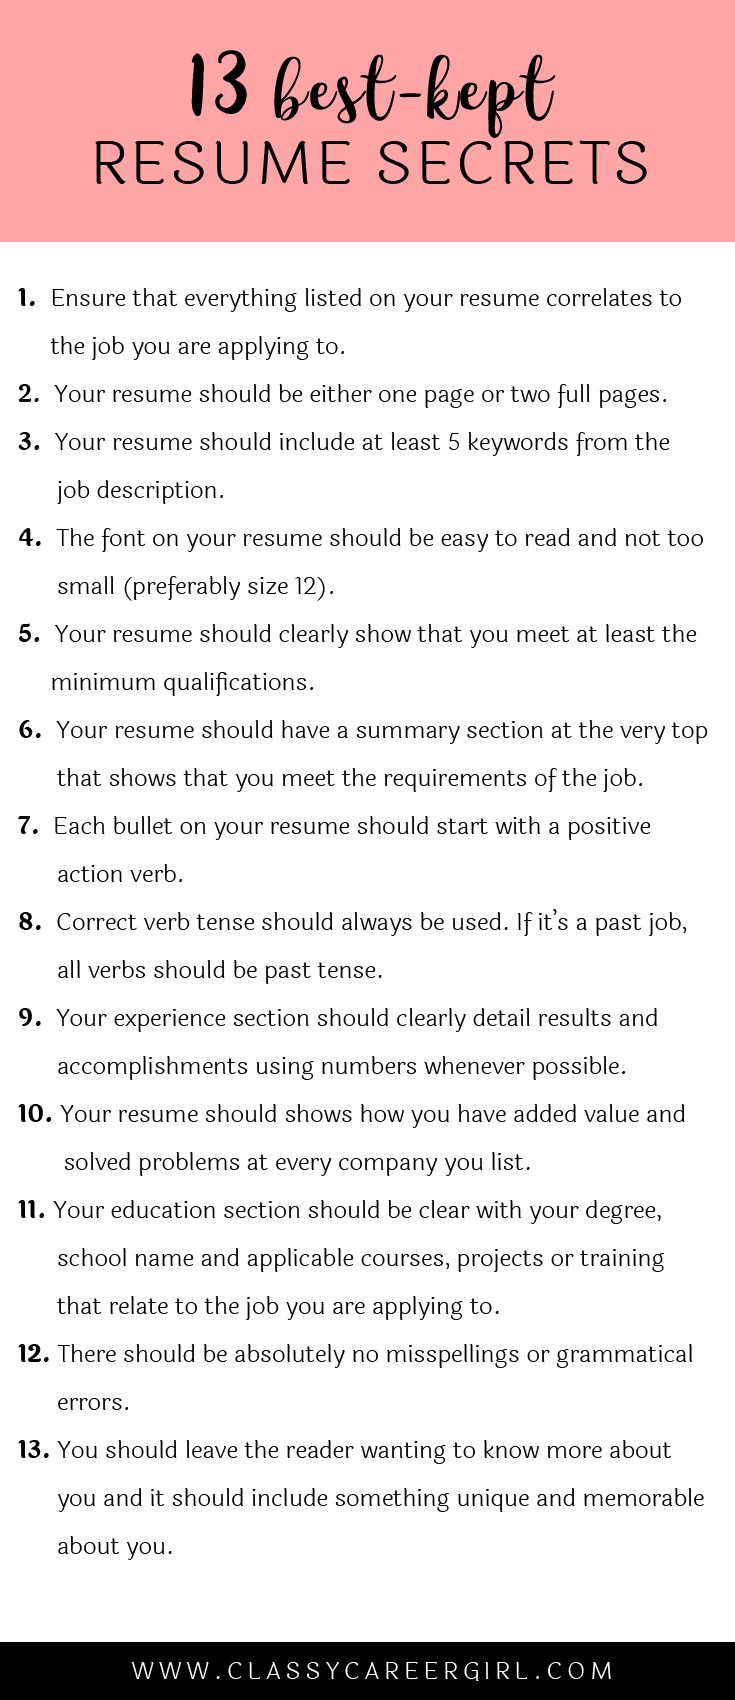 Opposenewapstandardsus  Picturesque  Ideas About Resume On Pinterest  Cv Format Resume Cv And  With Inspiring Some Hiring Managers Will Toss Your Resume Out If You Dont Know These  With Awesome Event Planning Resume Also Accounting Resume Examples In Addition Resume Language Skills And Update Resume As Well As Objective Section Of Resume Additionally Resume Templates For Google Docs From Pinterestcom With Opposenewapstandardsus  Inspiring  Ideas About Resume On Pinterest  Cv Format Resume Cv And  With Awesome Some Hiring Managers Will Toss Your Resume Out If You Dont Know These  And Picturesque Event Planning Resume Also Accounting Resume Examples In Addition Resume Language Skills From Pinterestcom